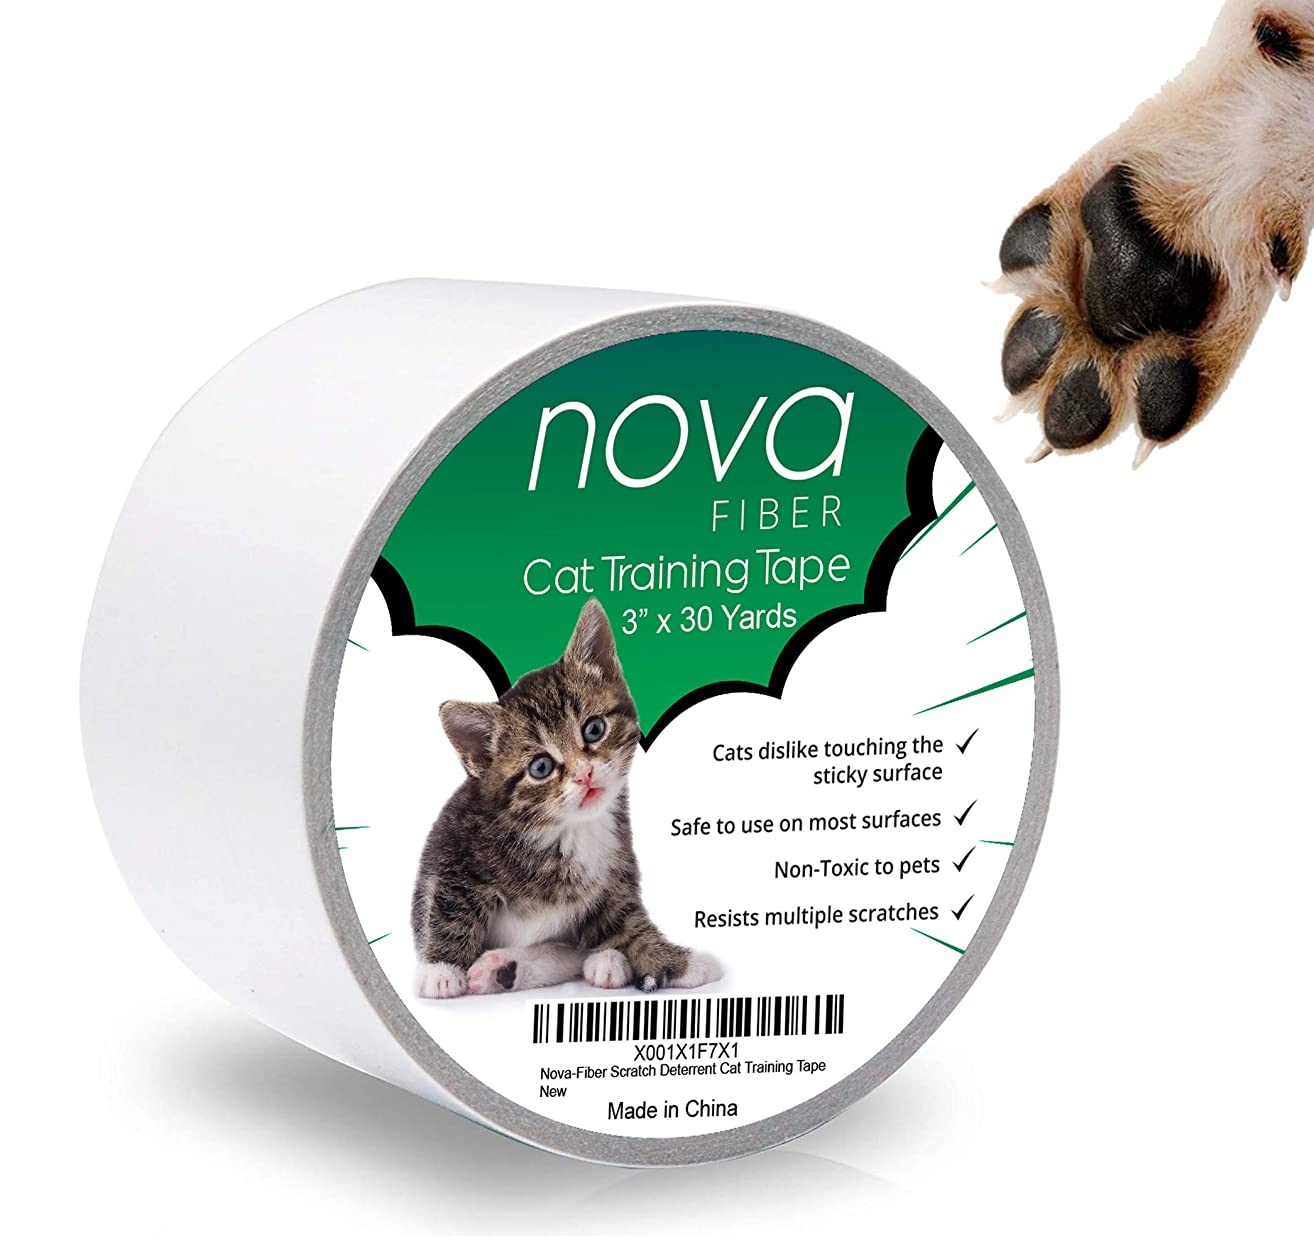 Nova-Fiber Scratch Deterrent Cat Training Tape, 3 inch x 30 Yards, Stop Your pet from Scratching Furniture, Chairs, Sofas, Textiles, Bed Posts etc.